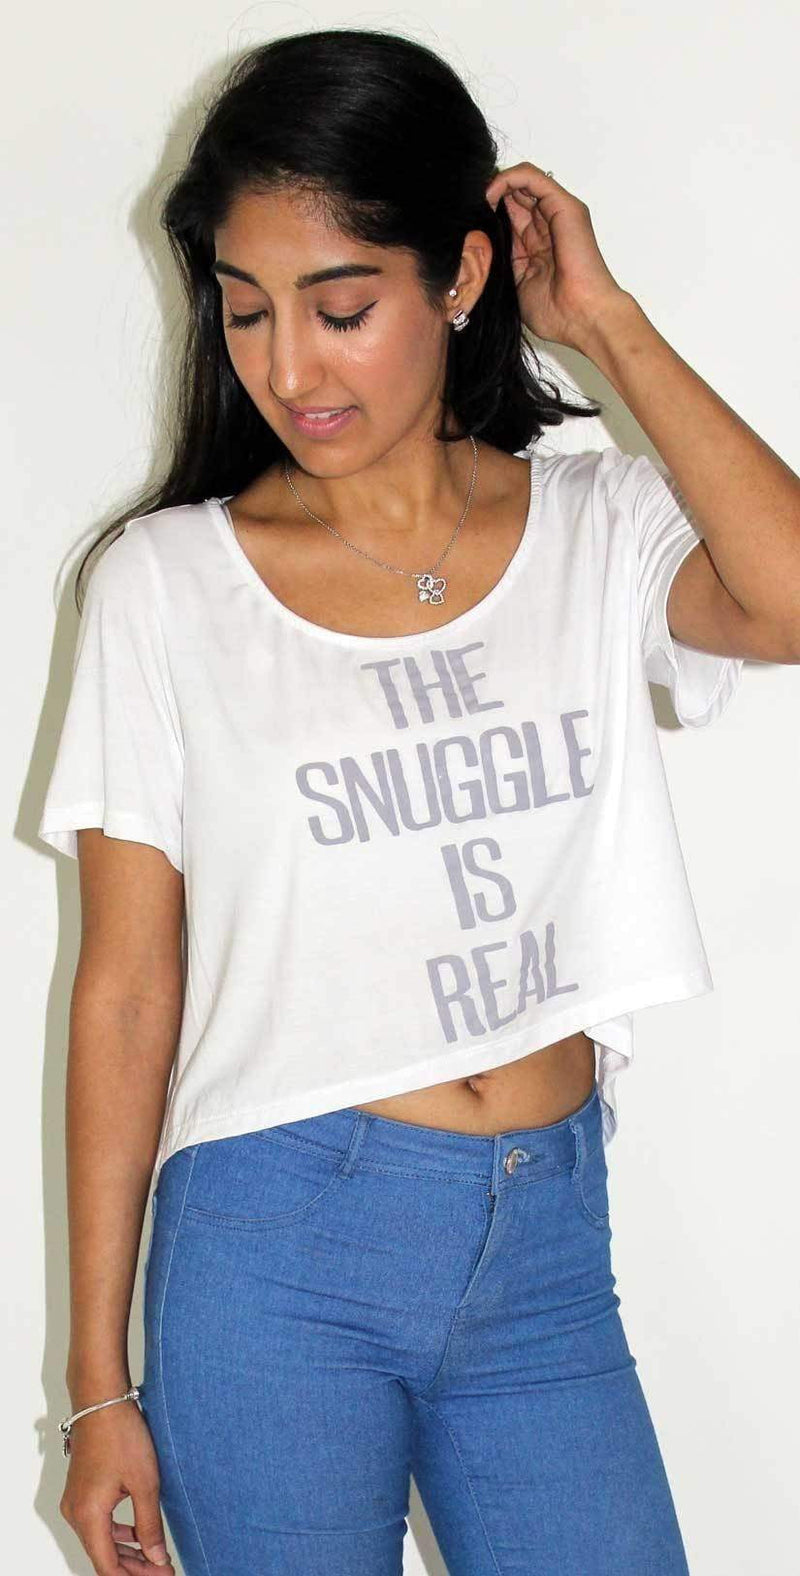 Ete Apparel The Snuggle is Real Crop Top T Shirt in White 1-13-WHT-TSIR-17-P: